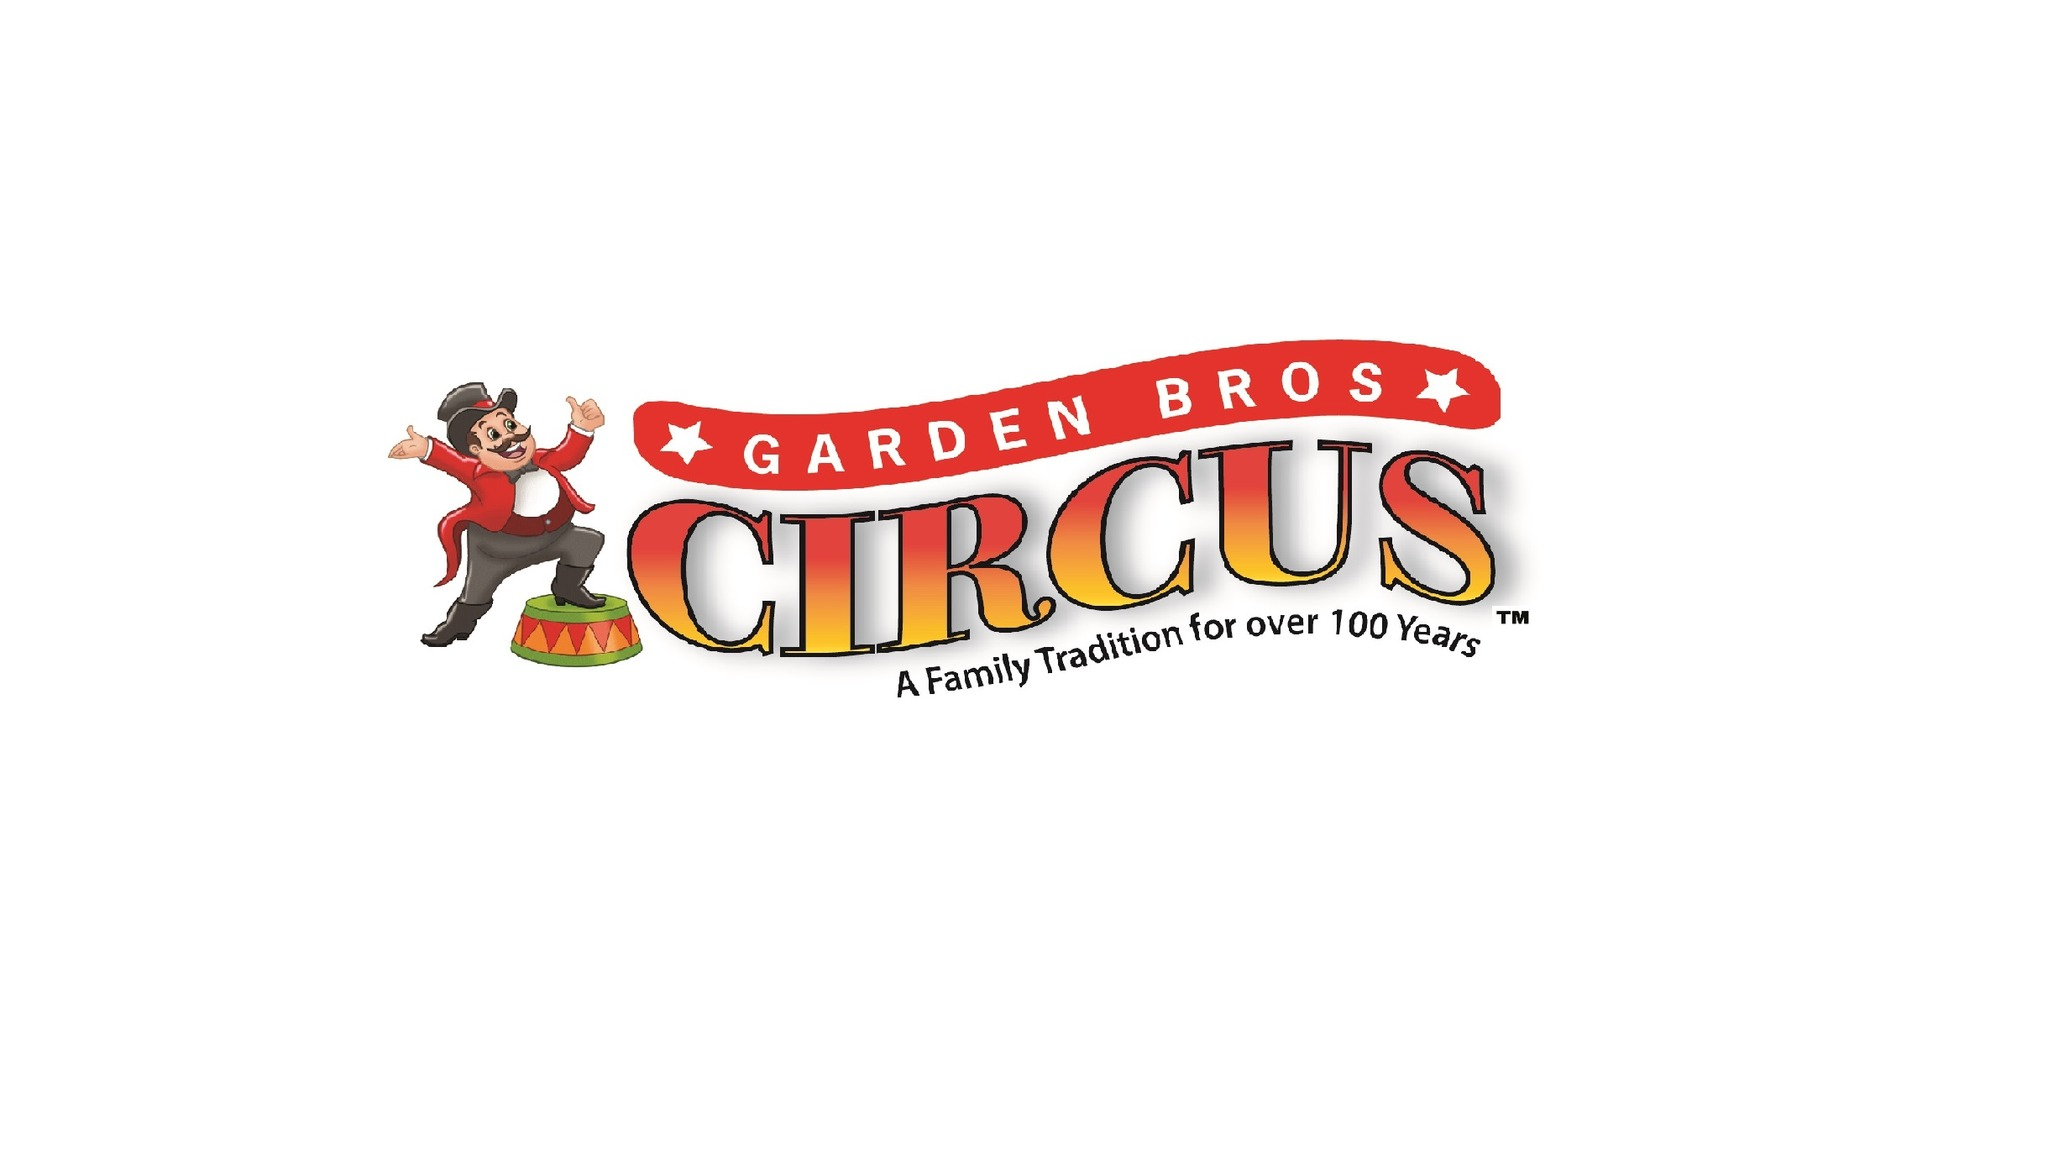 Calendar visit albany georgia albany convention and - Garden bros circus ticket prices ...